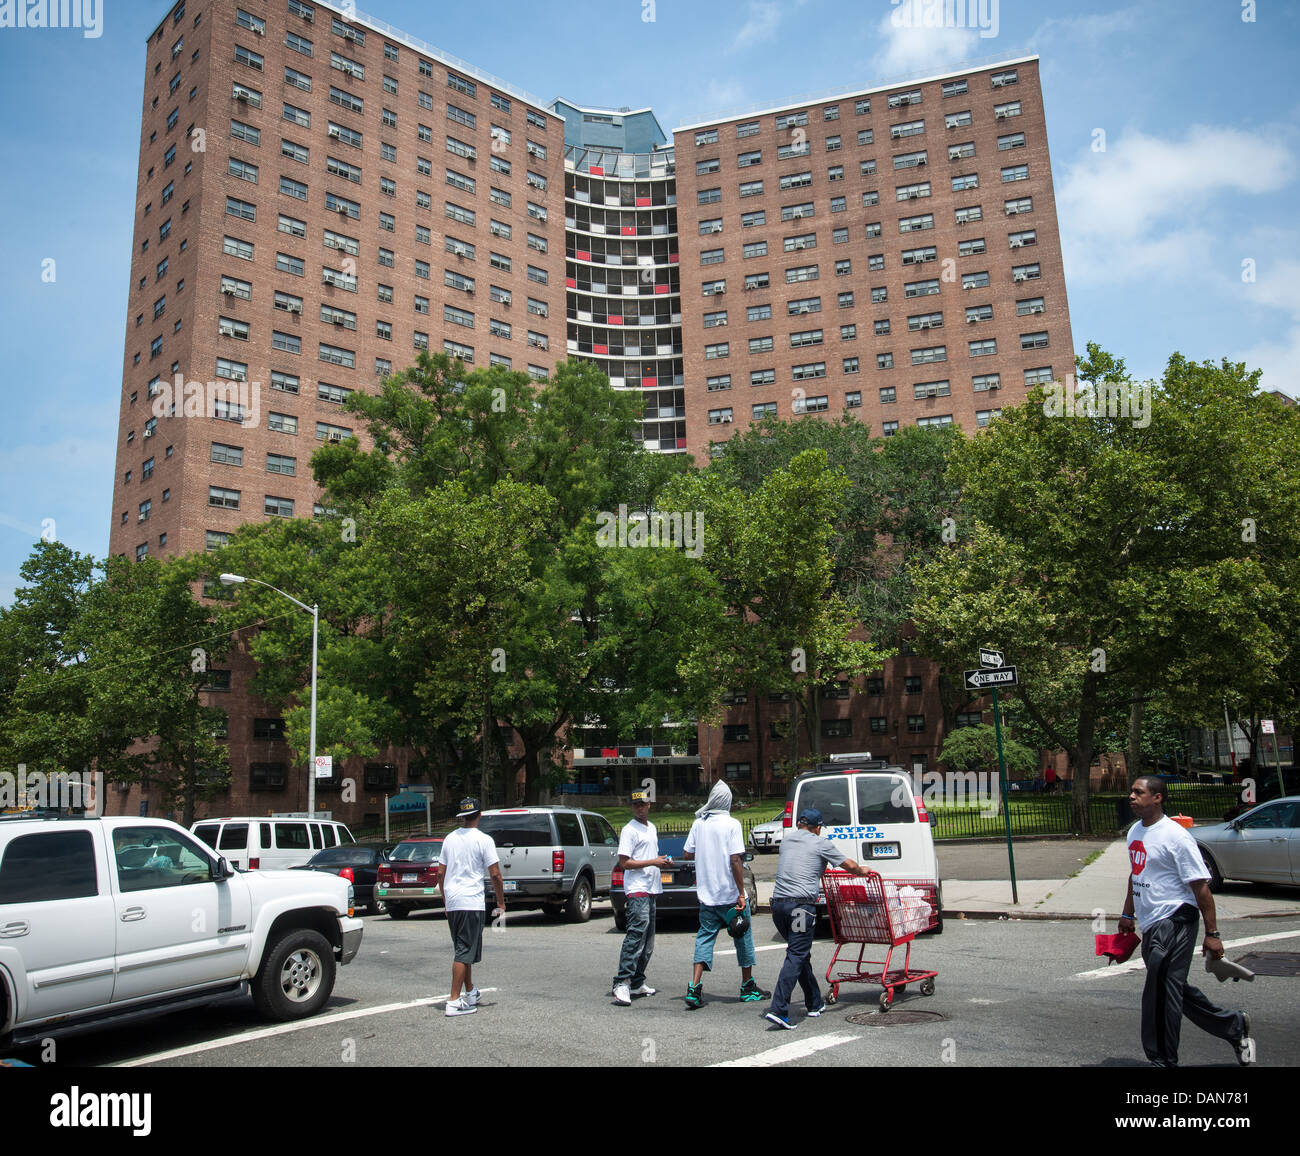 Nyc Housing Gov: Manhattanville Housing Project In Harlem In New York Stock